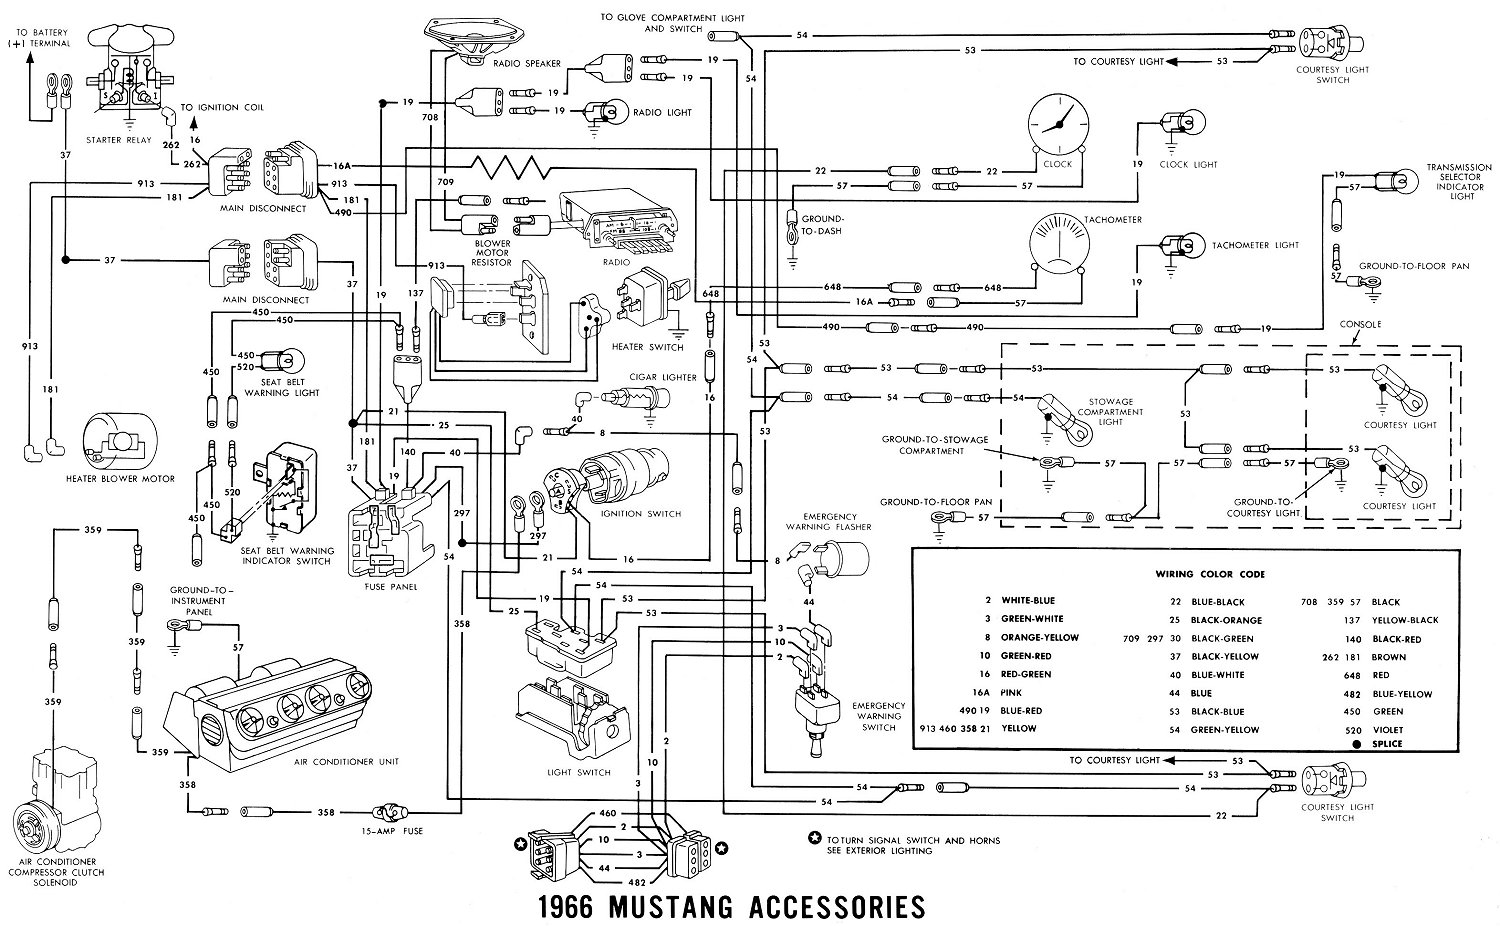 Wiring Diagram For A 1969 Chevrolet C10 in addition 1975 Chevy Wiring Diagram additionally 1970 Fairlane 500 Steering Column Diagram furthermore 1954 Chevy Truck Documents 54 55 Windshield Washer Car 1955 likewise Diagram view. on 1963 chevy c10 wiring diagram